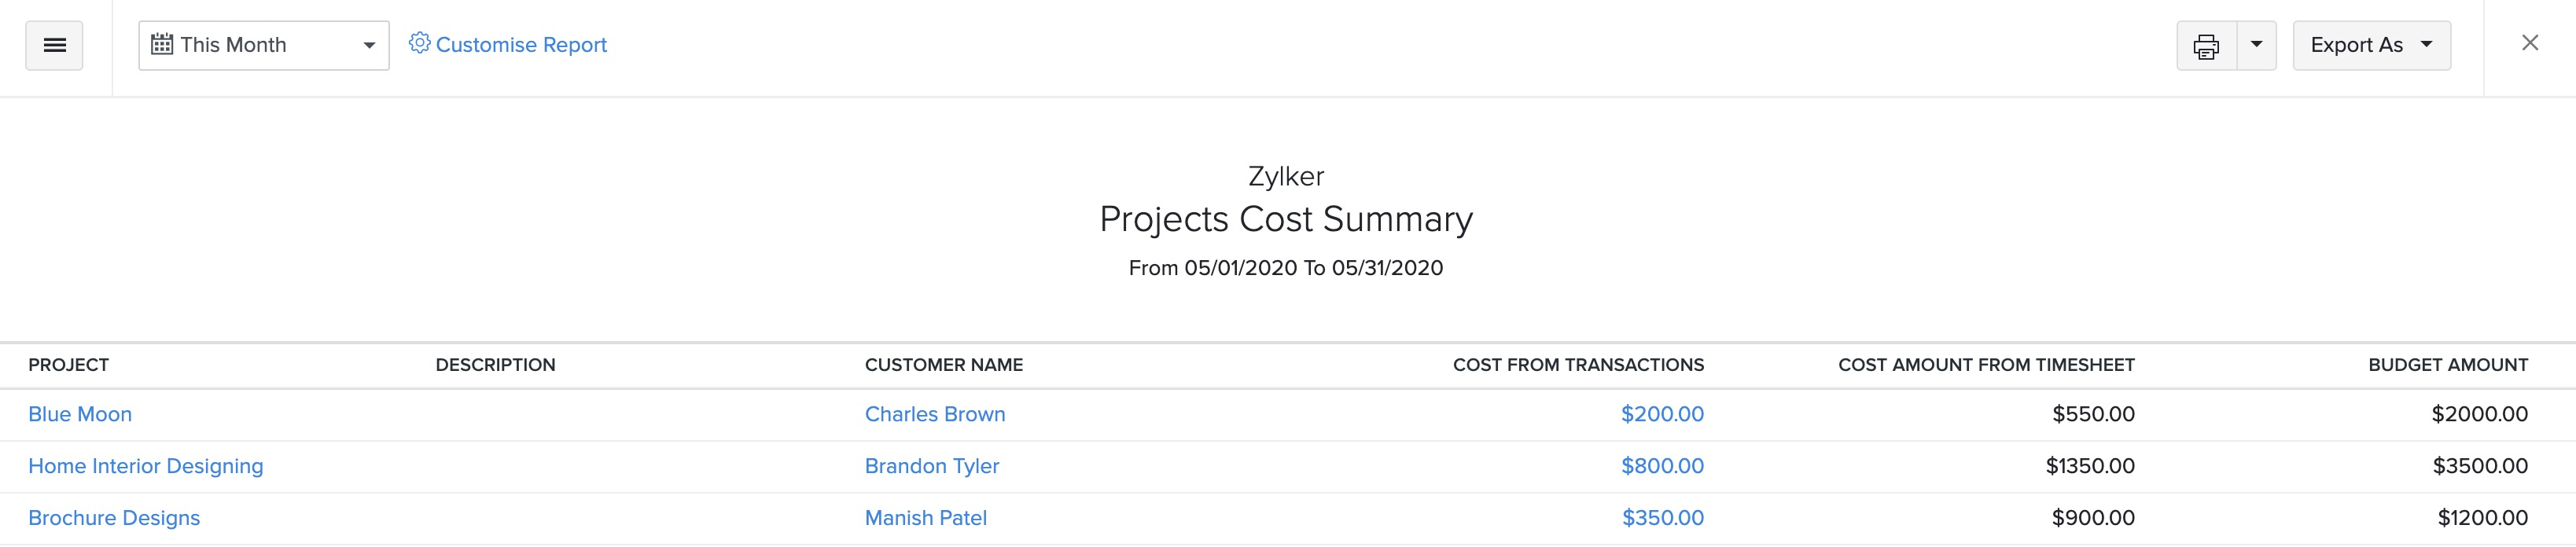 Project Cost Summary Report